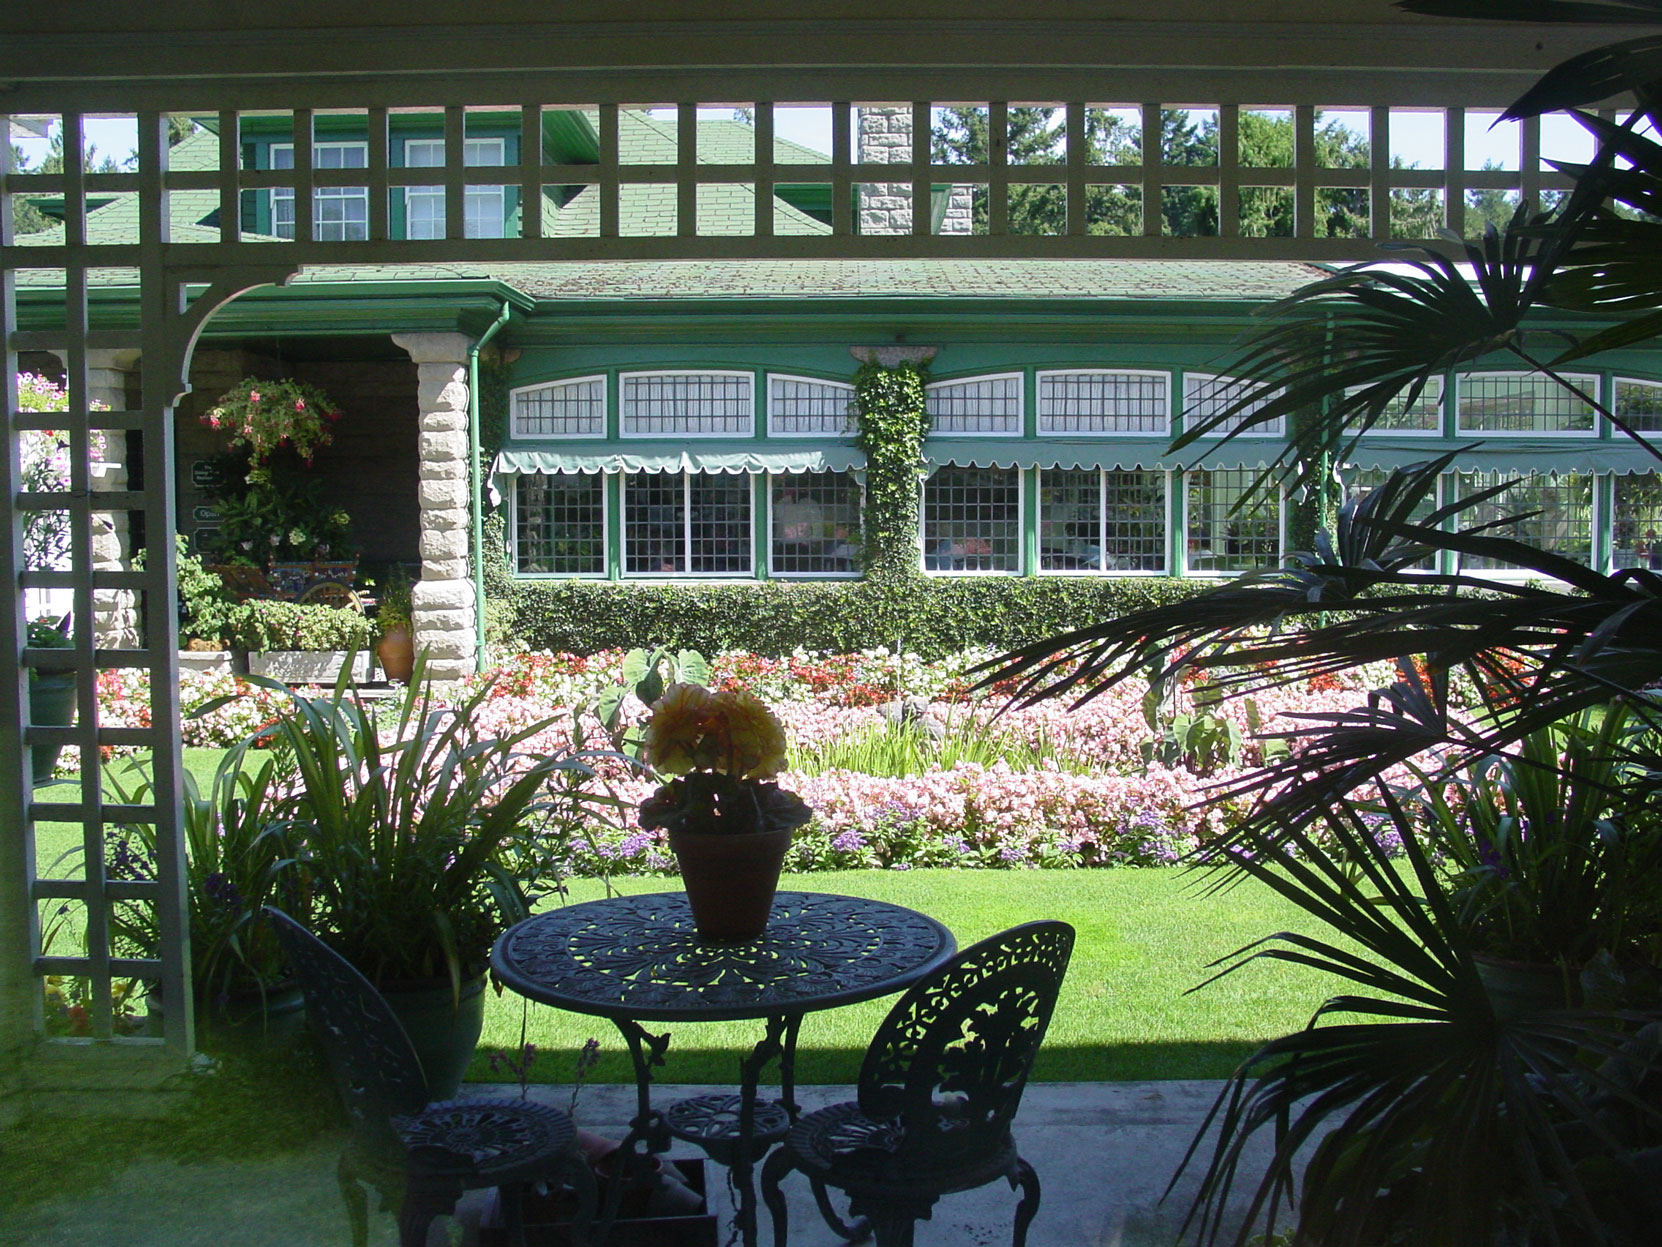 Jennie Butchart's Private Garden, designed and built in 1920-1921 by architect Samuel Maclure, looking toward the Sun Room, designed by Samuel Maclure in 1911 and extended by Samuel Maclure in 1919.This photo was taken from the Sun Room in August (photo by Author)